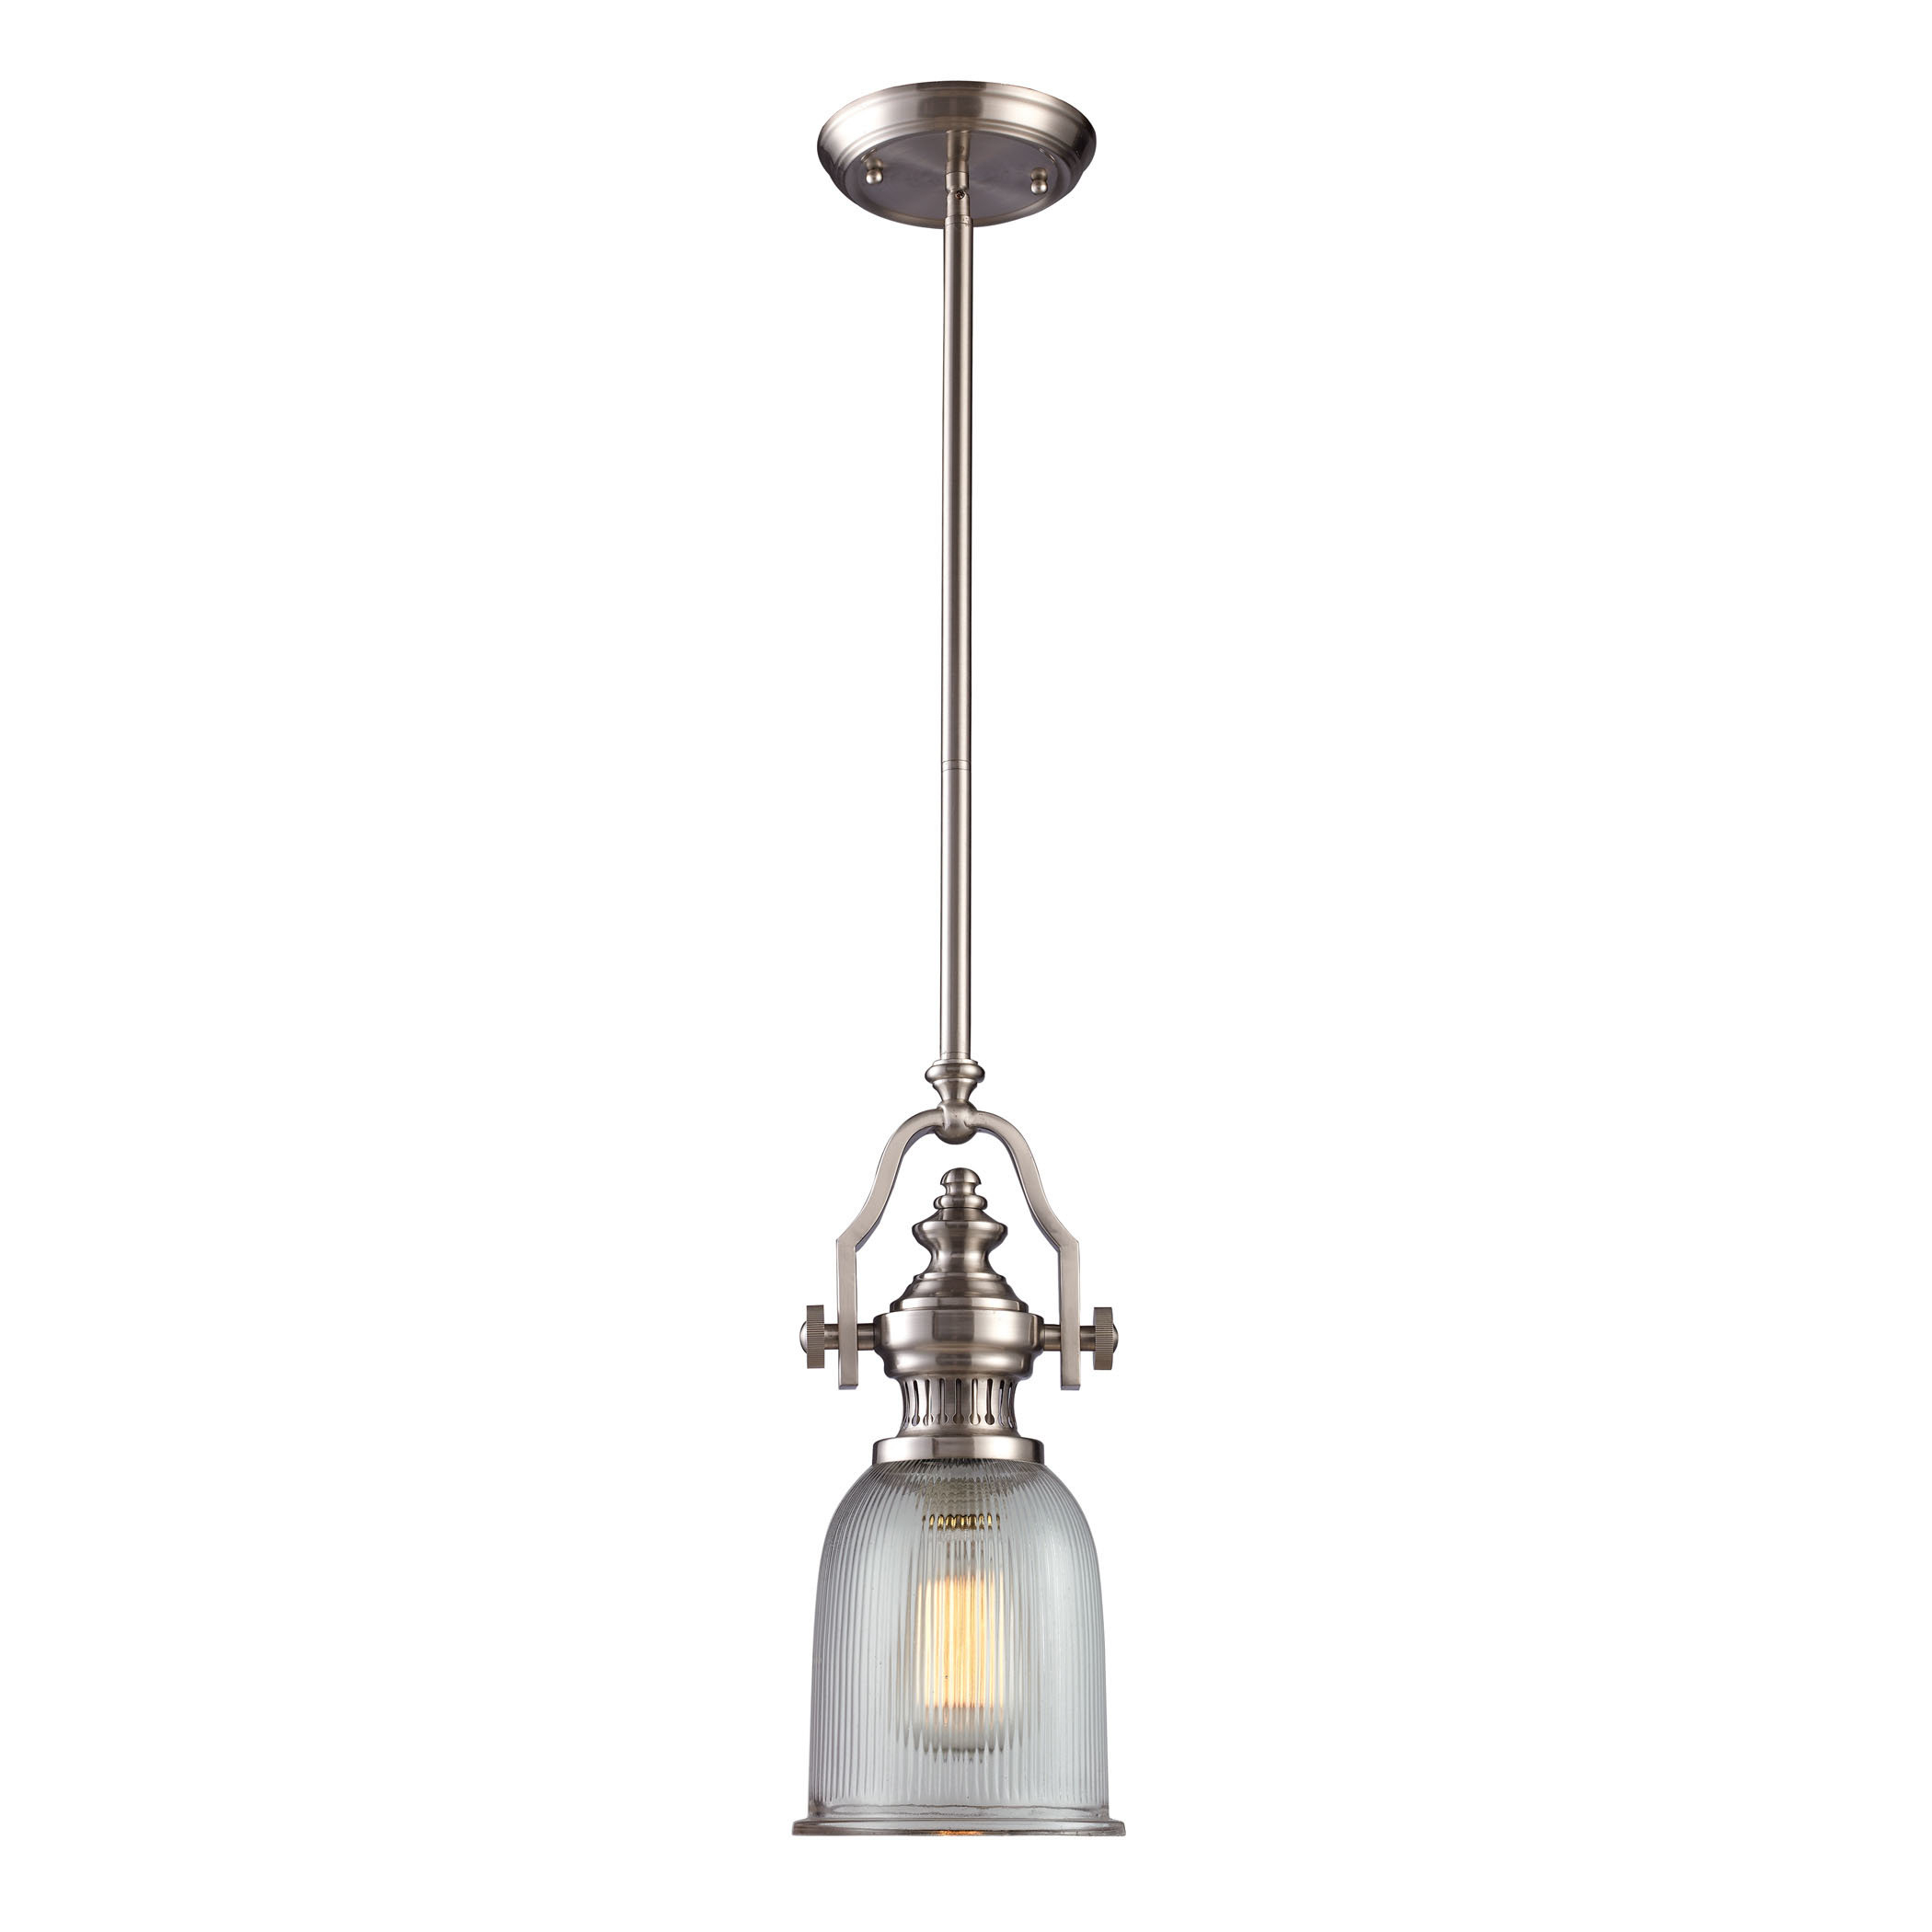 Birch Lane™ Heritage Erico 1 Light Single Bell Pendant Within Sargent 1 Light Single Bell Pendants (View 7 of 30)